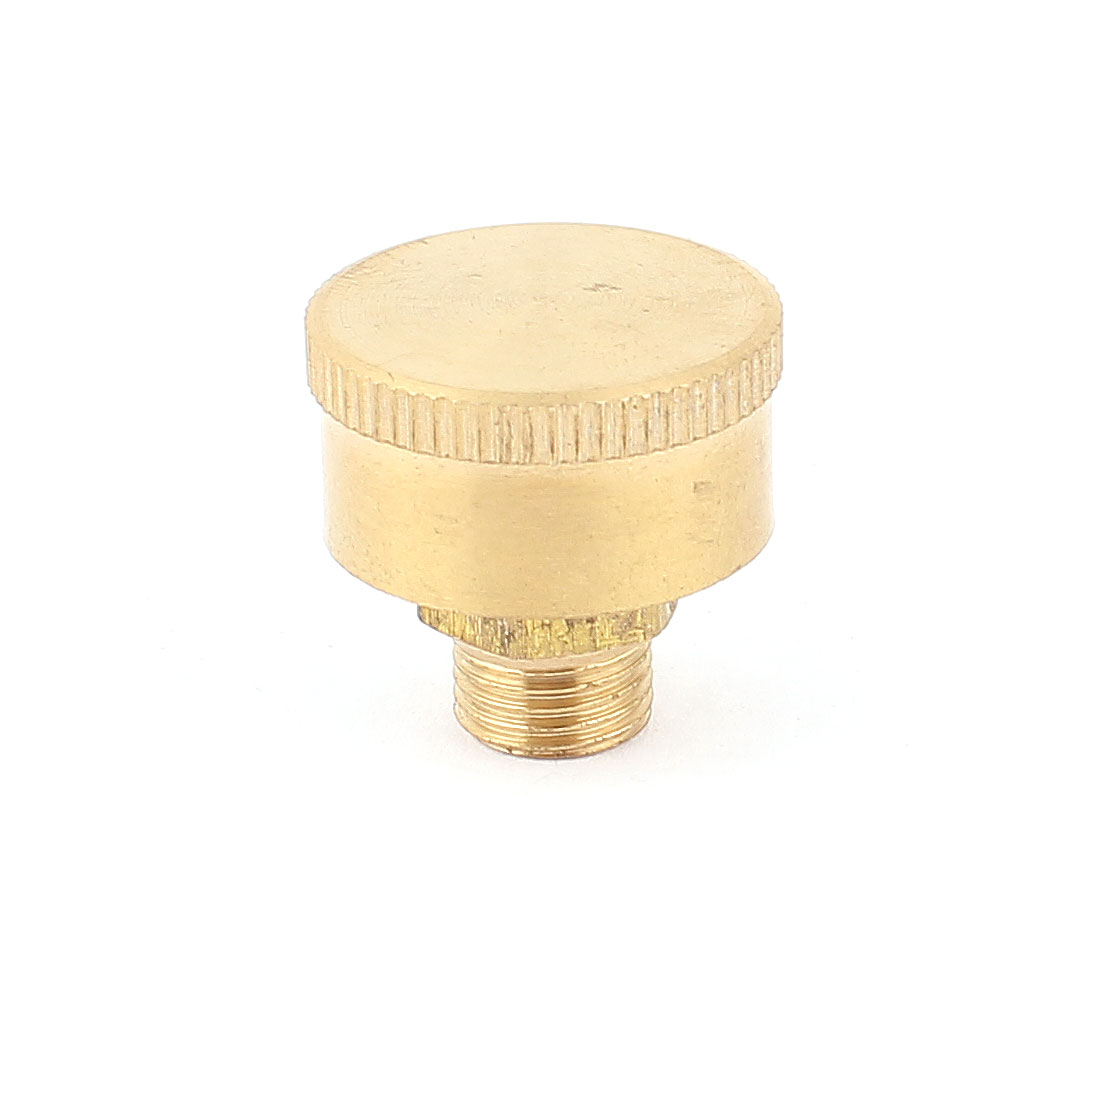 Machine Parts Oil Lubrication 1/8 NPT Male Thread Grease Cup Cap